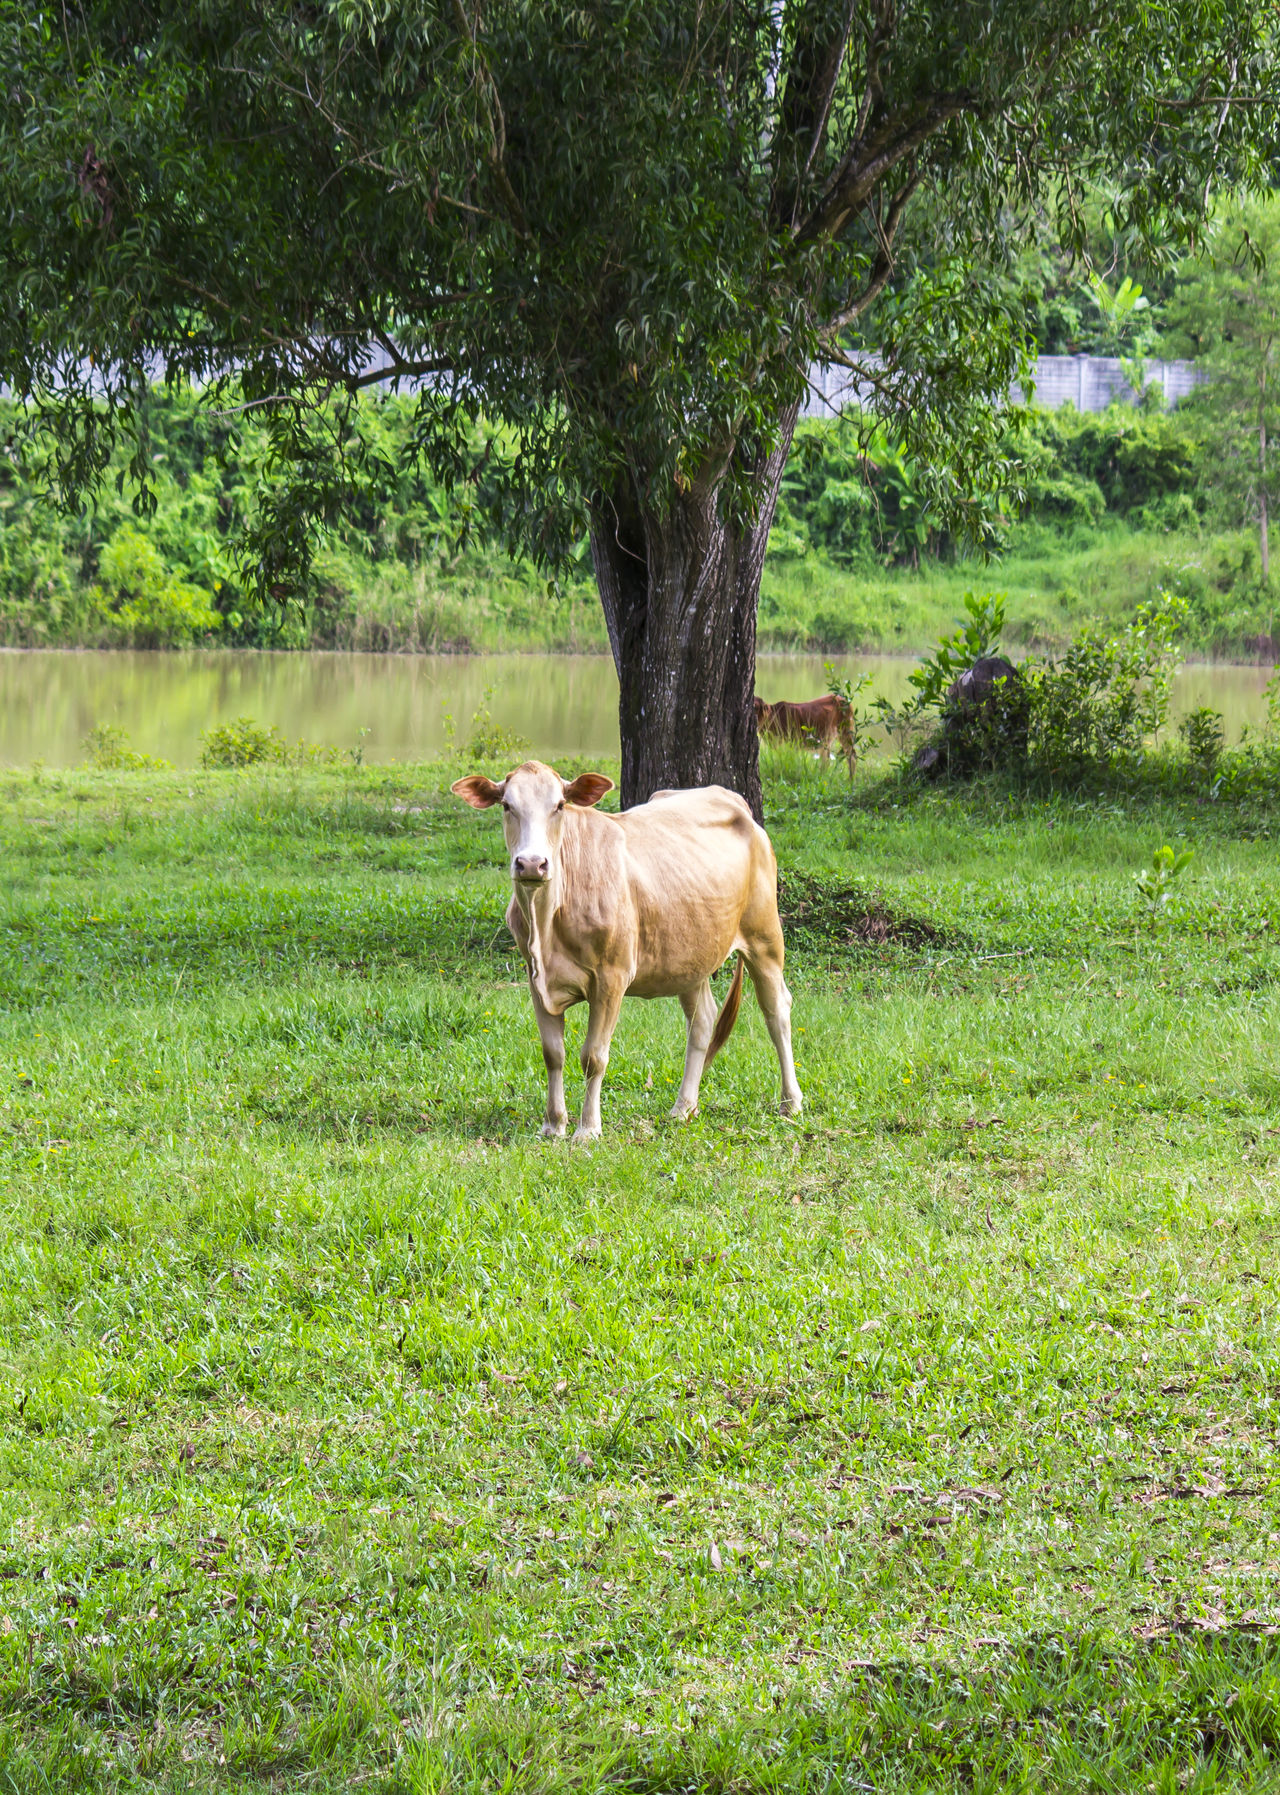 Standing young cow on green grass Agriculture Animal Themes Beef Bovine Bull Cattle Countryside Cow Domestic Animals Farm Field Grass Landscape Livestock Mammal Nature Outdoors Rural Standing Tree Young